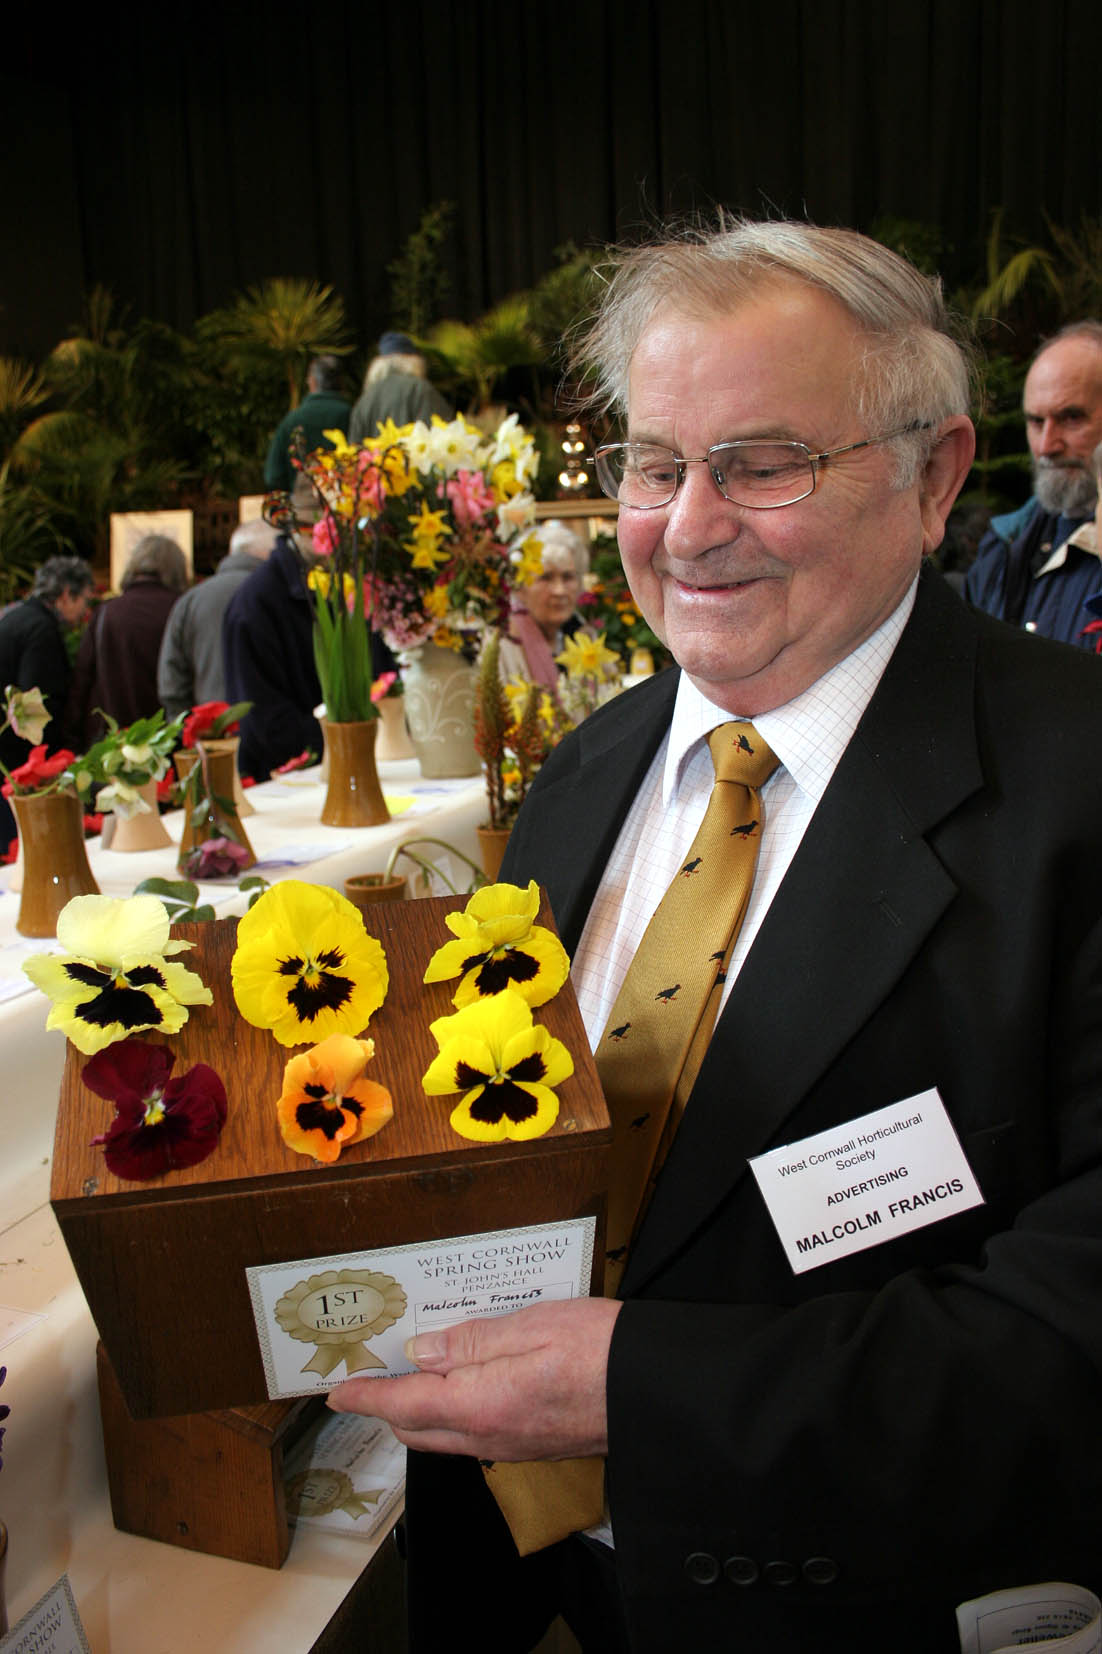 The 82nd West Cornwall Spring Show. Malcolm Francis shows off his 1st prize winning Pansies. Pic by CIOSP For Fletch